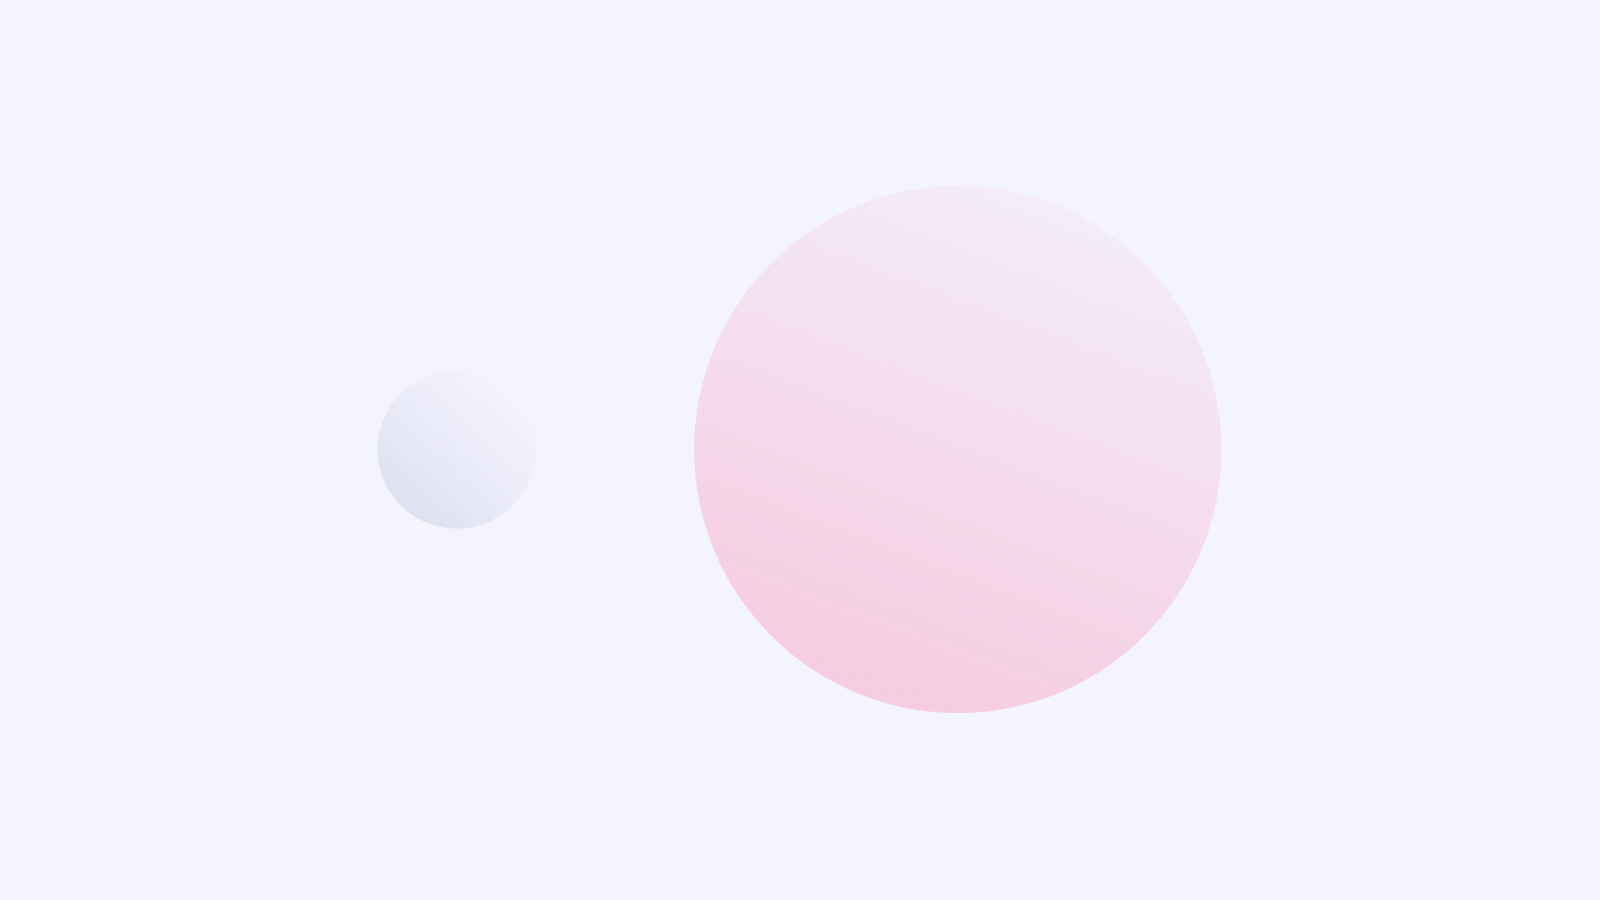 Here are two circles, a small one and a significantly larger one. You decide which generates more attention.